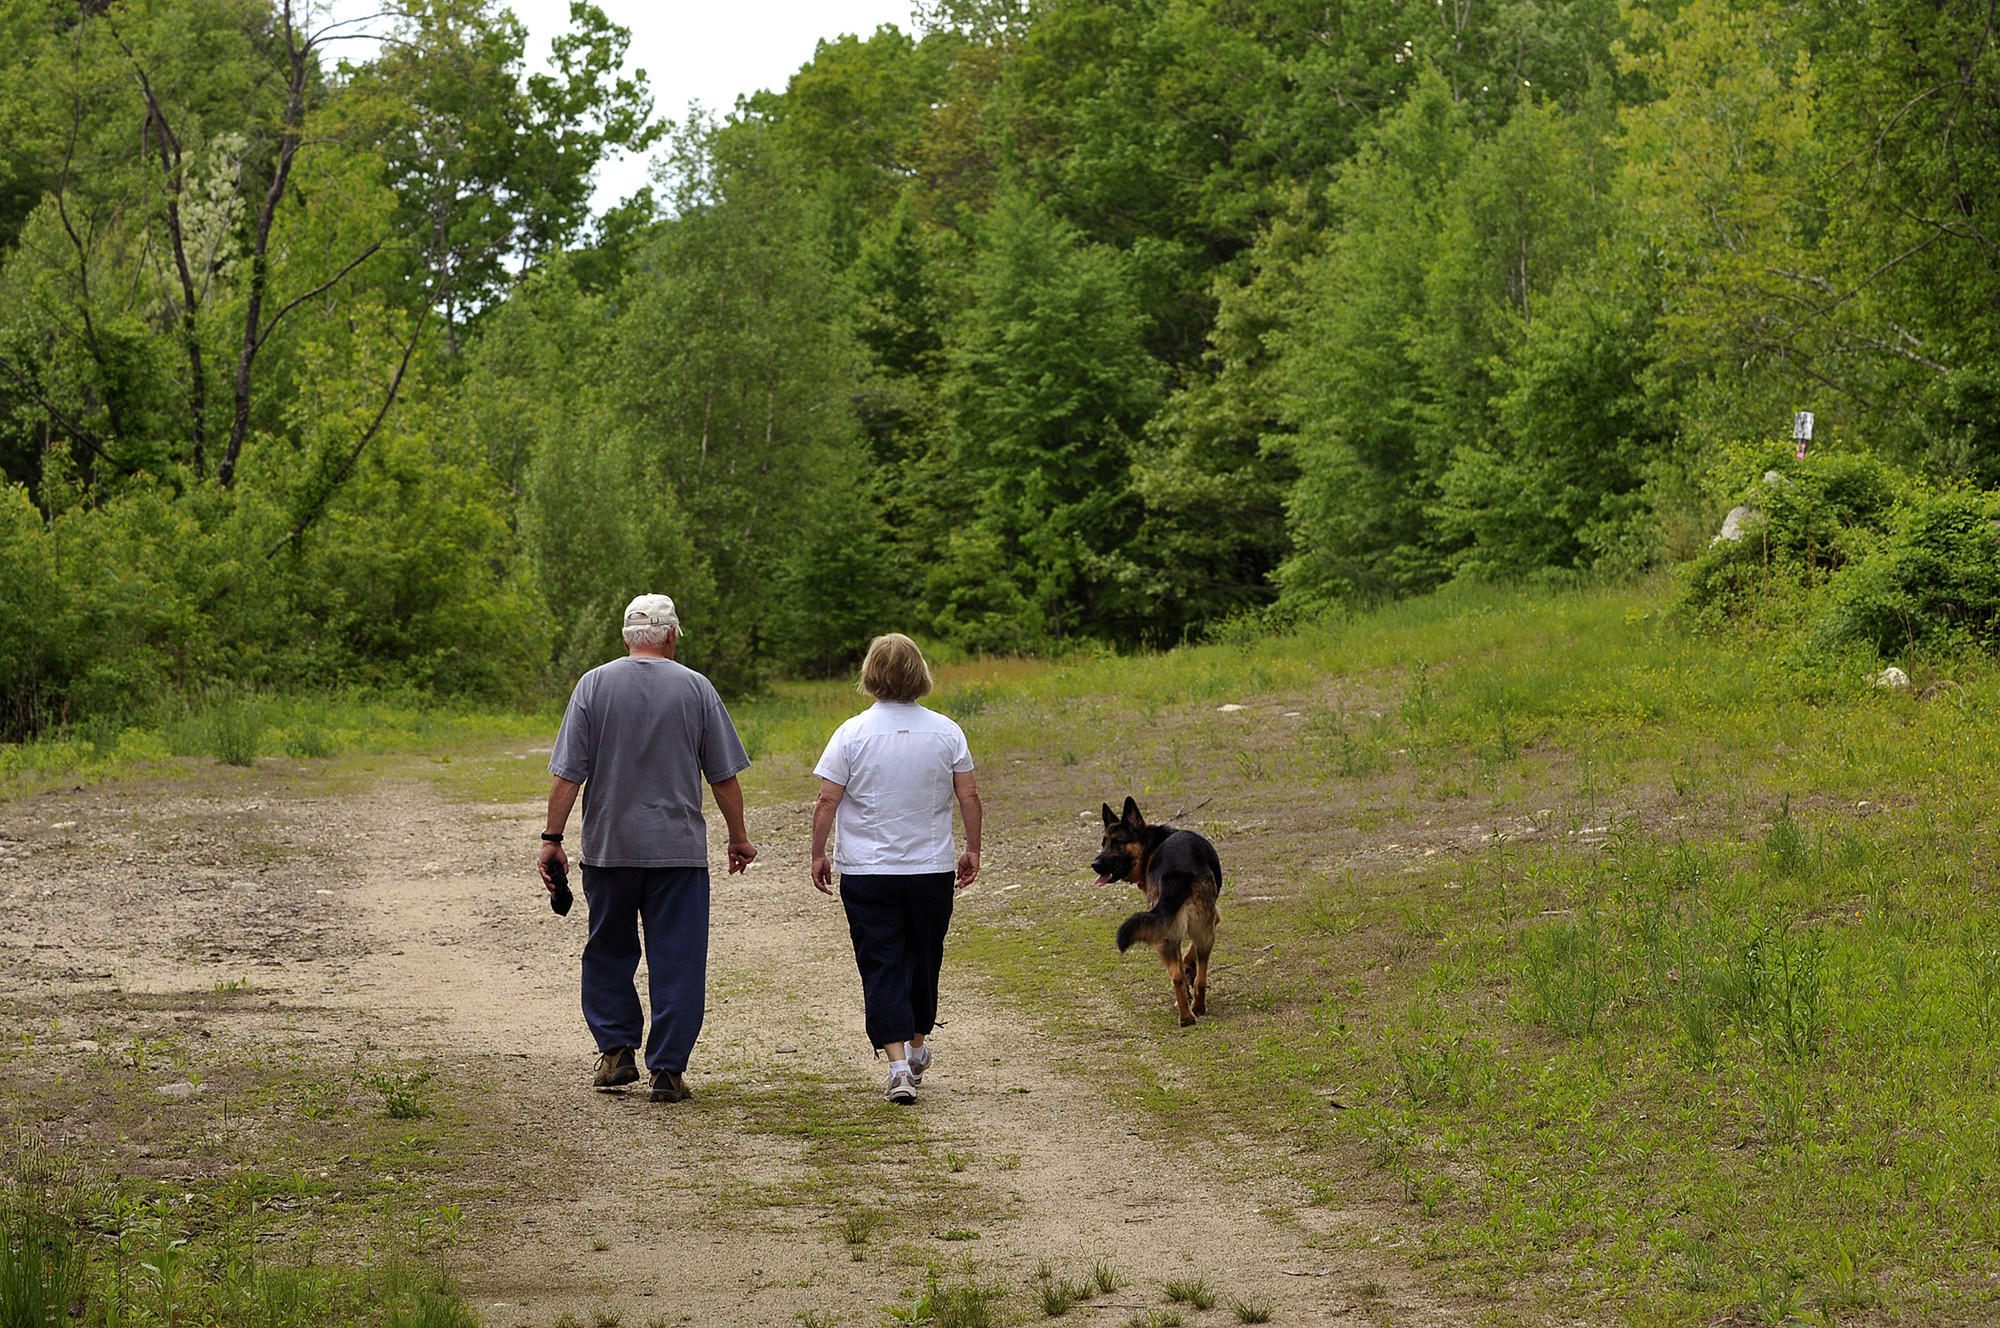 A proposal to develop land adjacent to Satan's Kingdom in both New Hartford and Canton is being opposed by Canton residents George and Laura Frascarelli. Here, they walk at the potential site of the development.